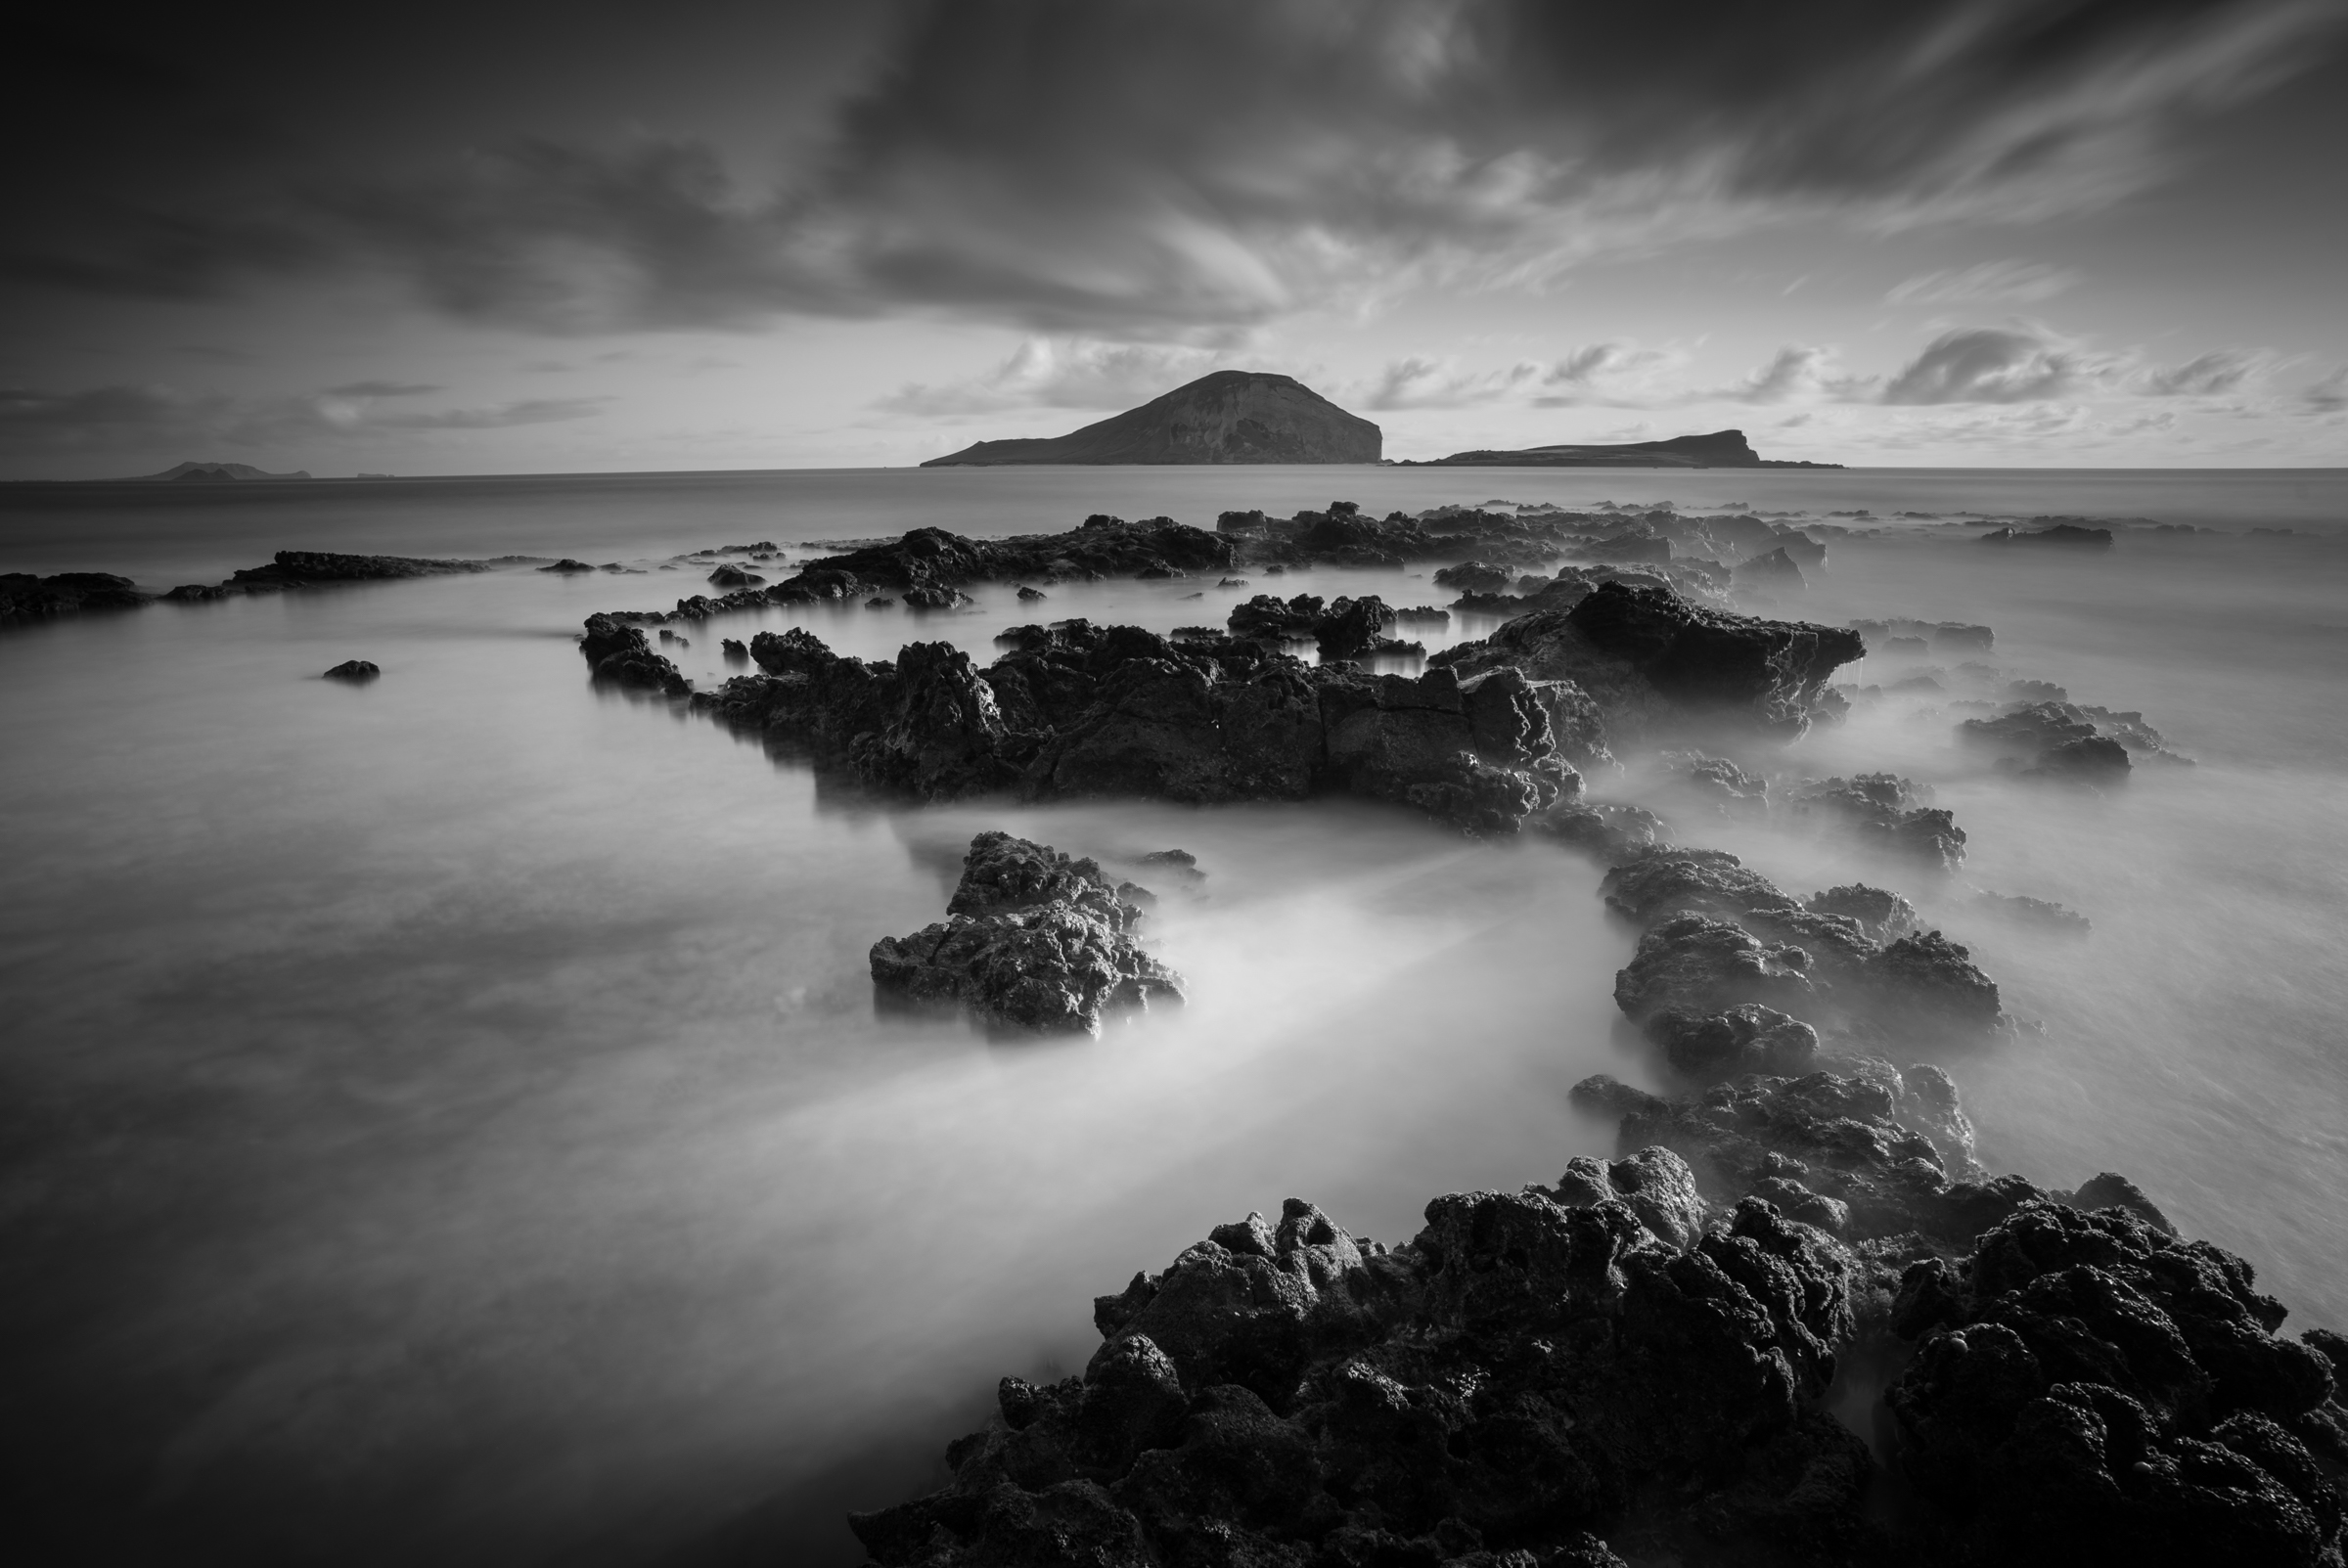 Sunrise at Makapuu Beach Park Oahu, Hawaii Stacked Lee Big Stopper &3 medium soft grad Sony A7S II |  121 sec. |  f/11 |  ISO 50  |  Zeiss Batis 18mm, f/2.8  Edited in Lightroom CC 2015  Copyright 2016 Ryan Sakamoto, All rights reserved